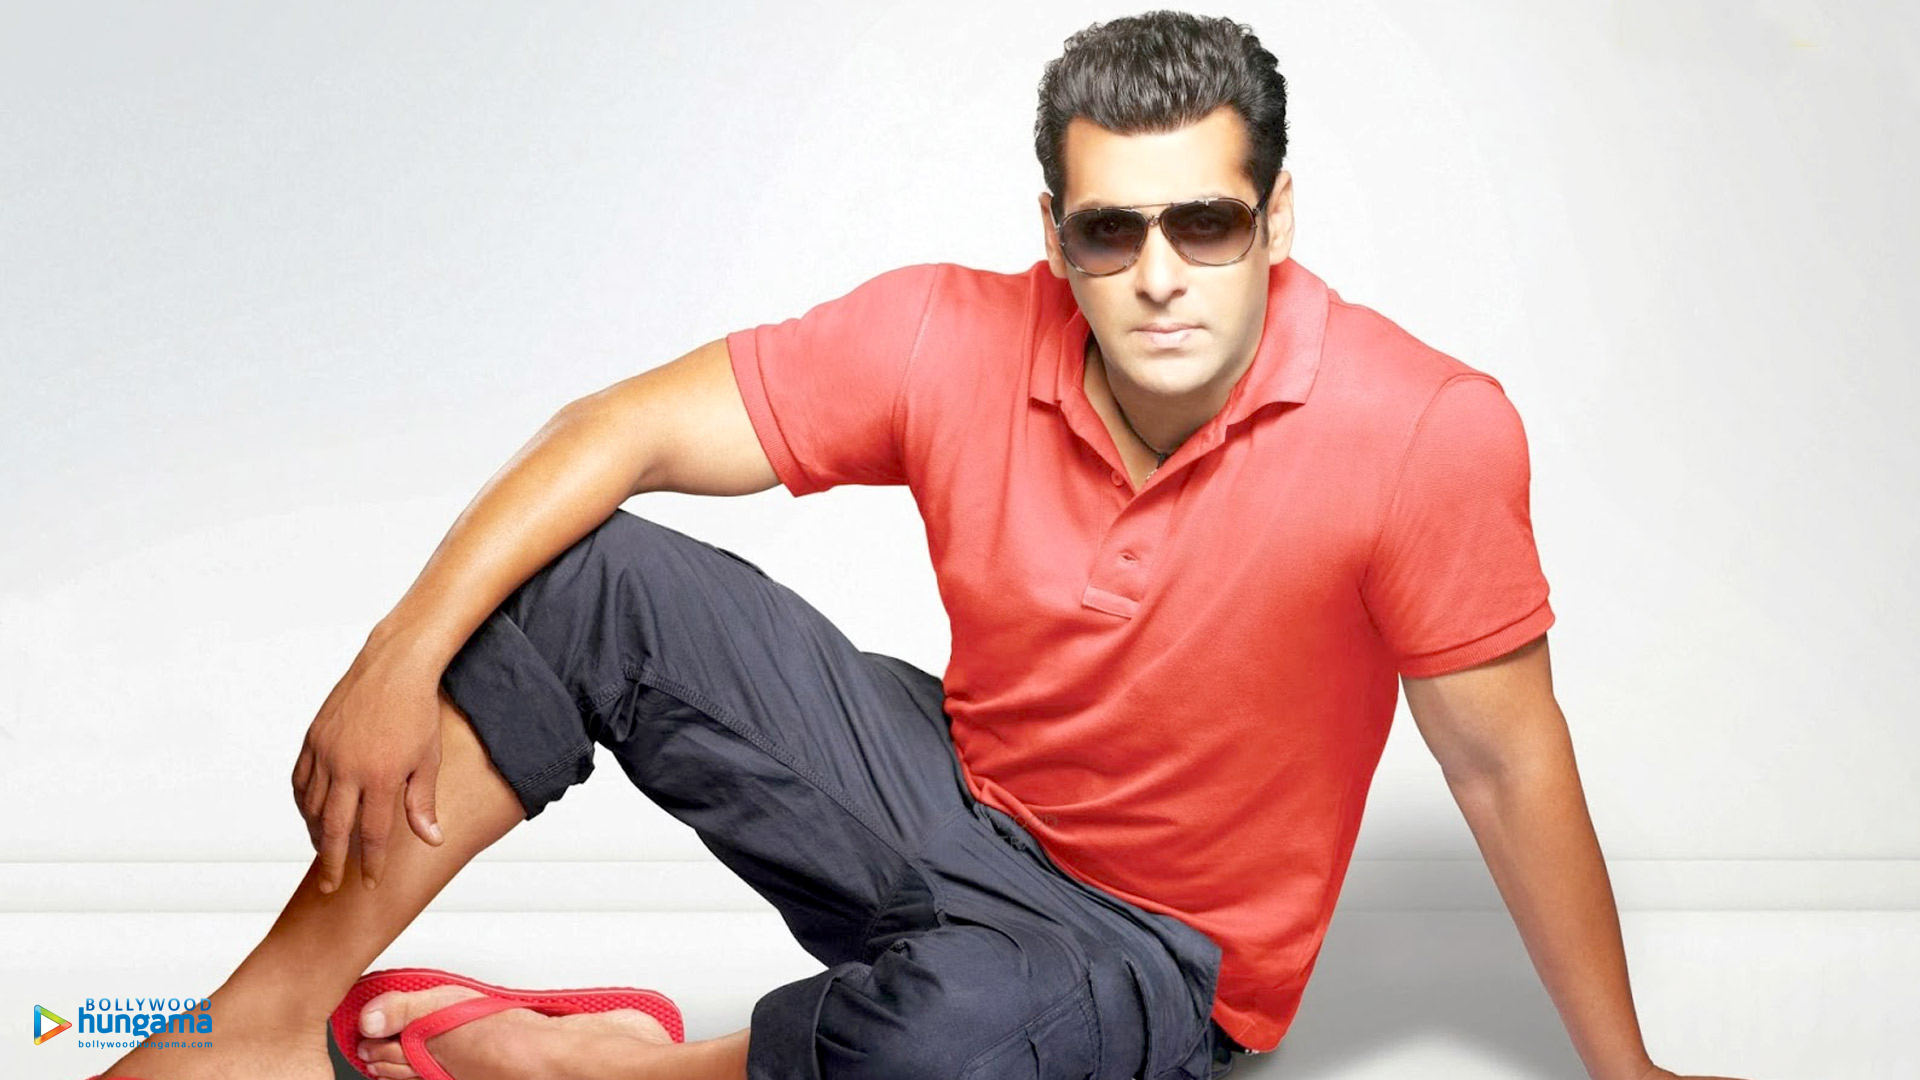 Salman Khan Wallpapers Salman Khan 17 Bollywood Hungama